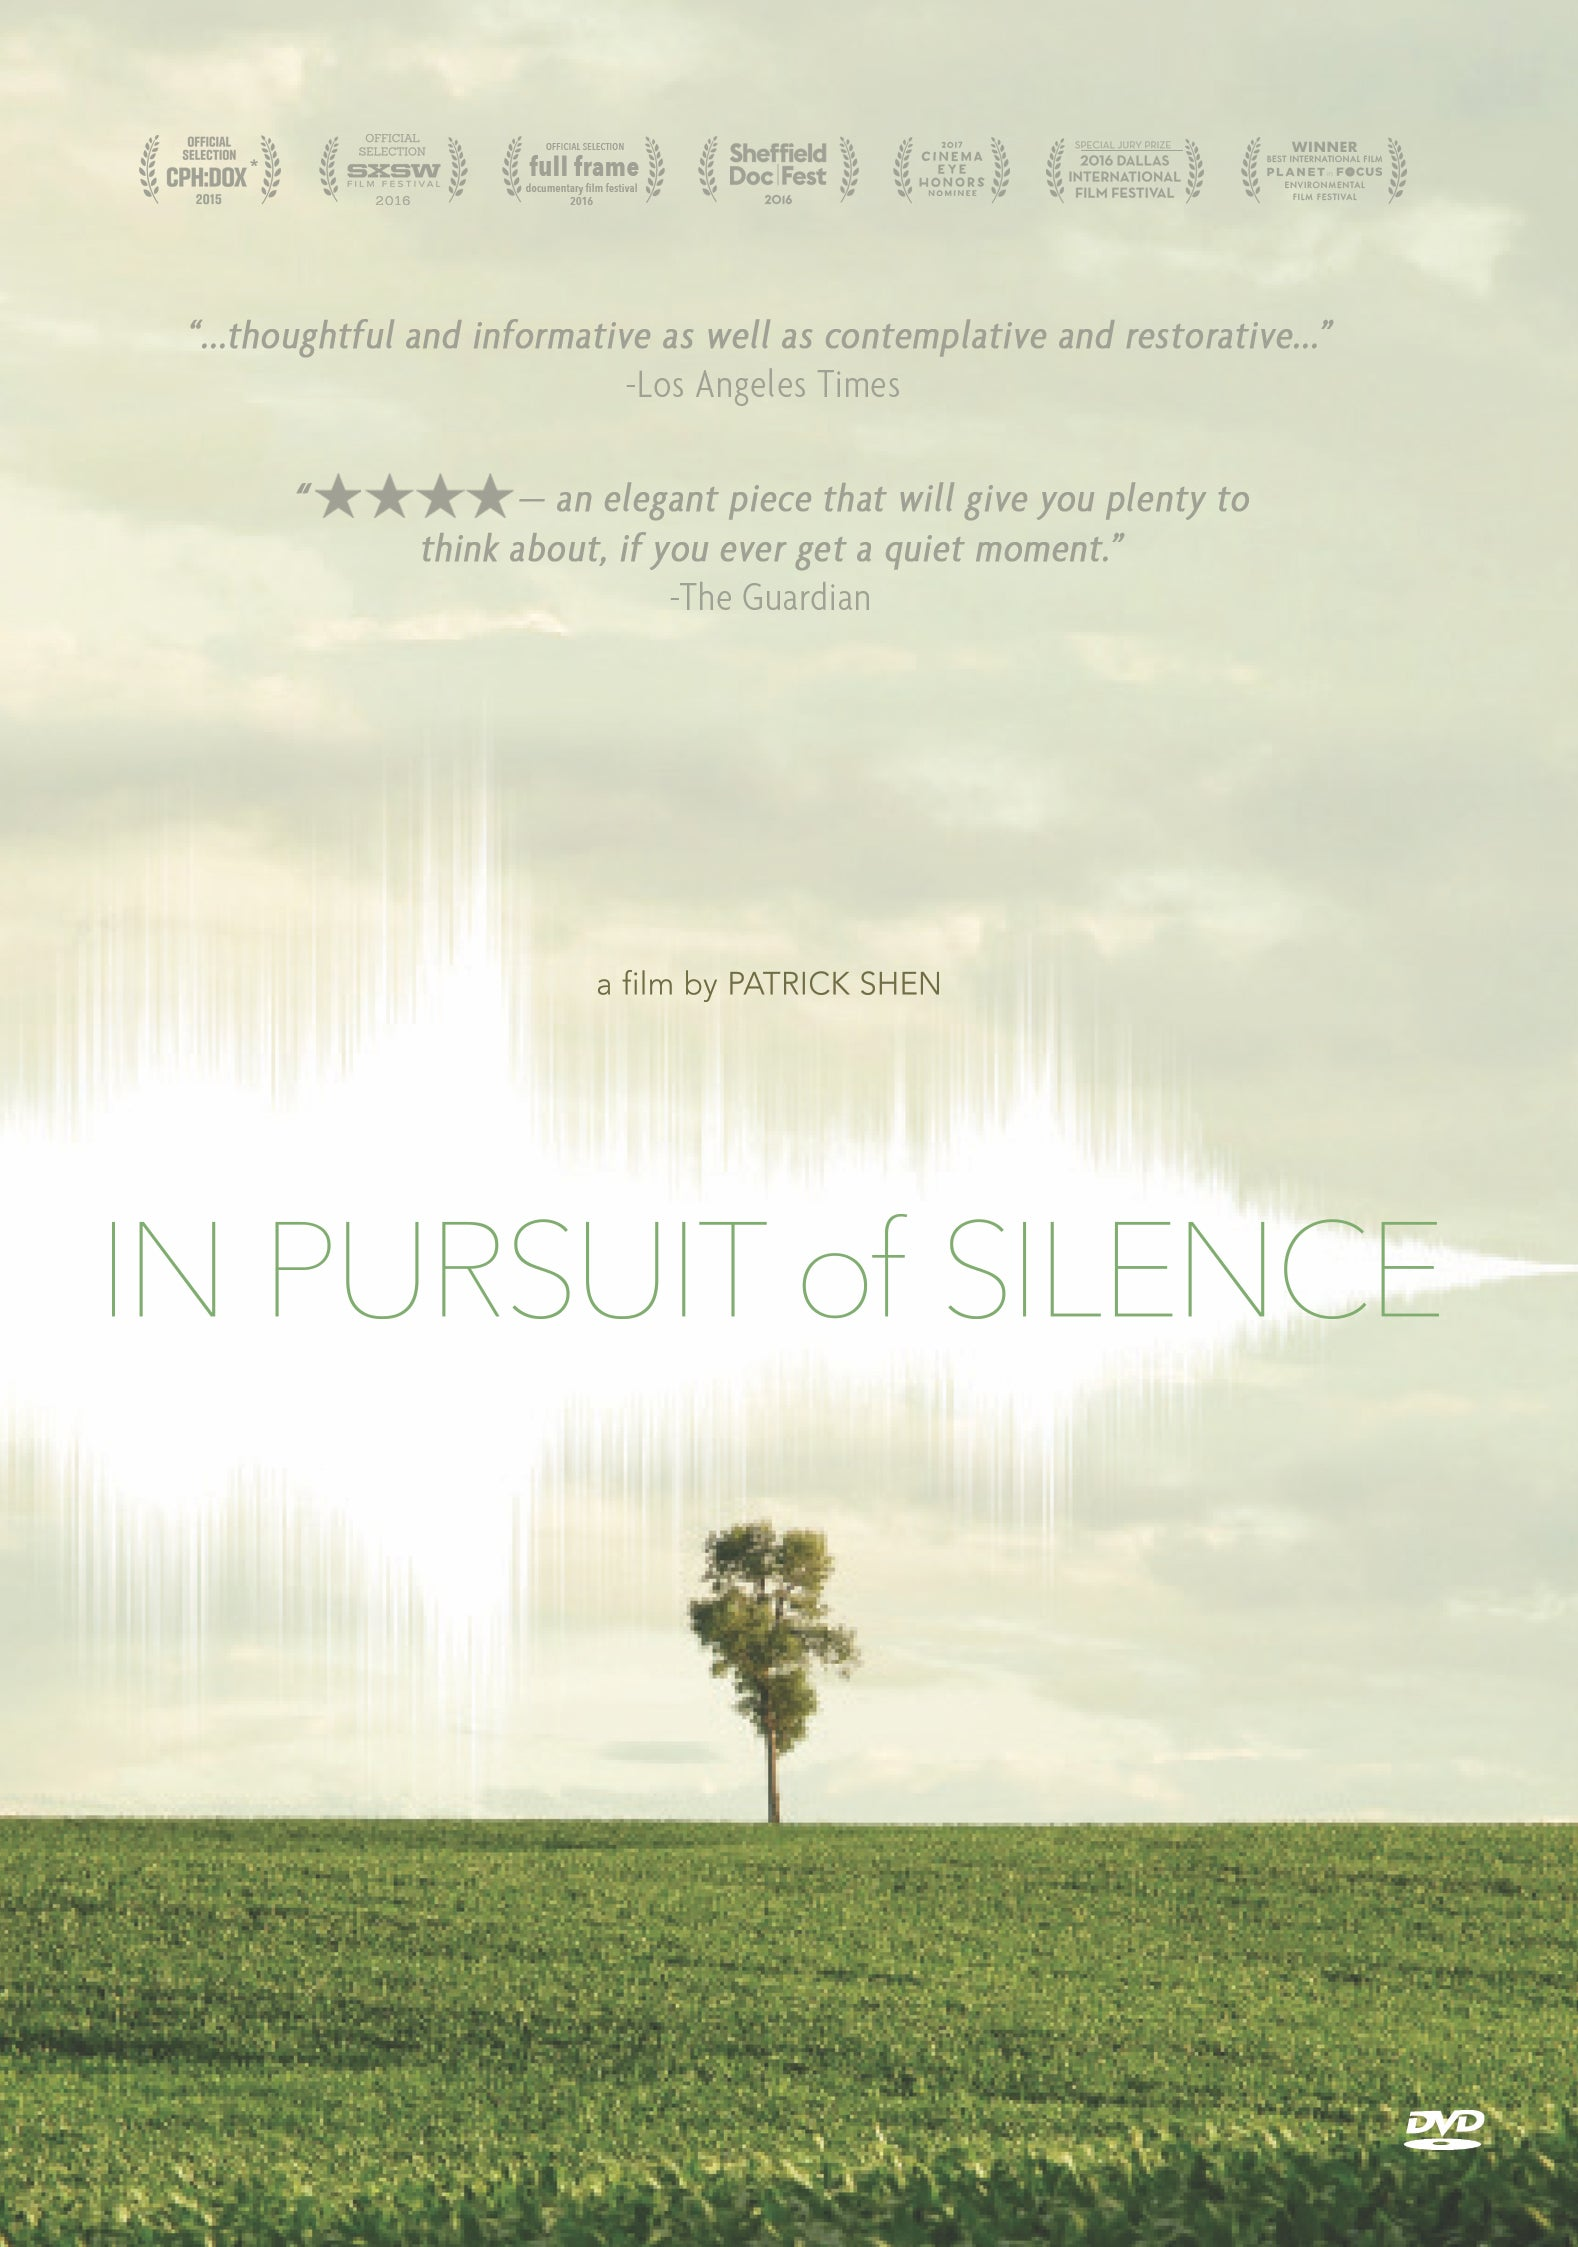 In Pursuit of Silence cover photo